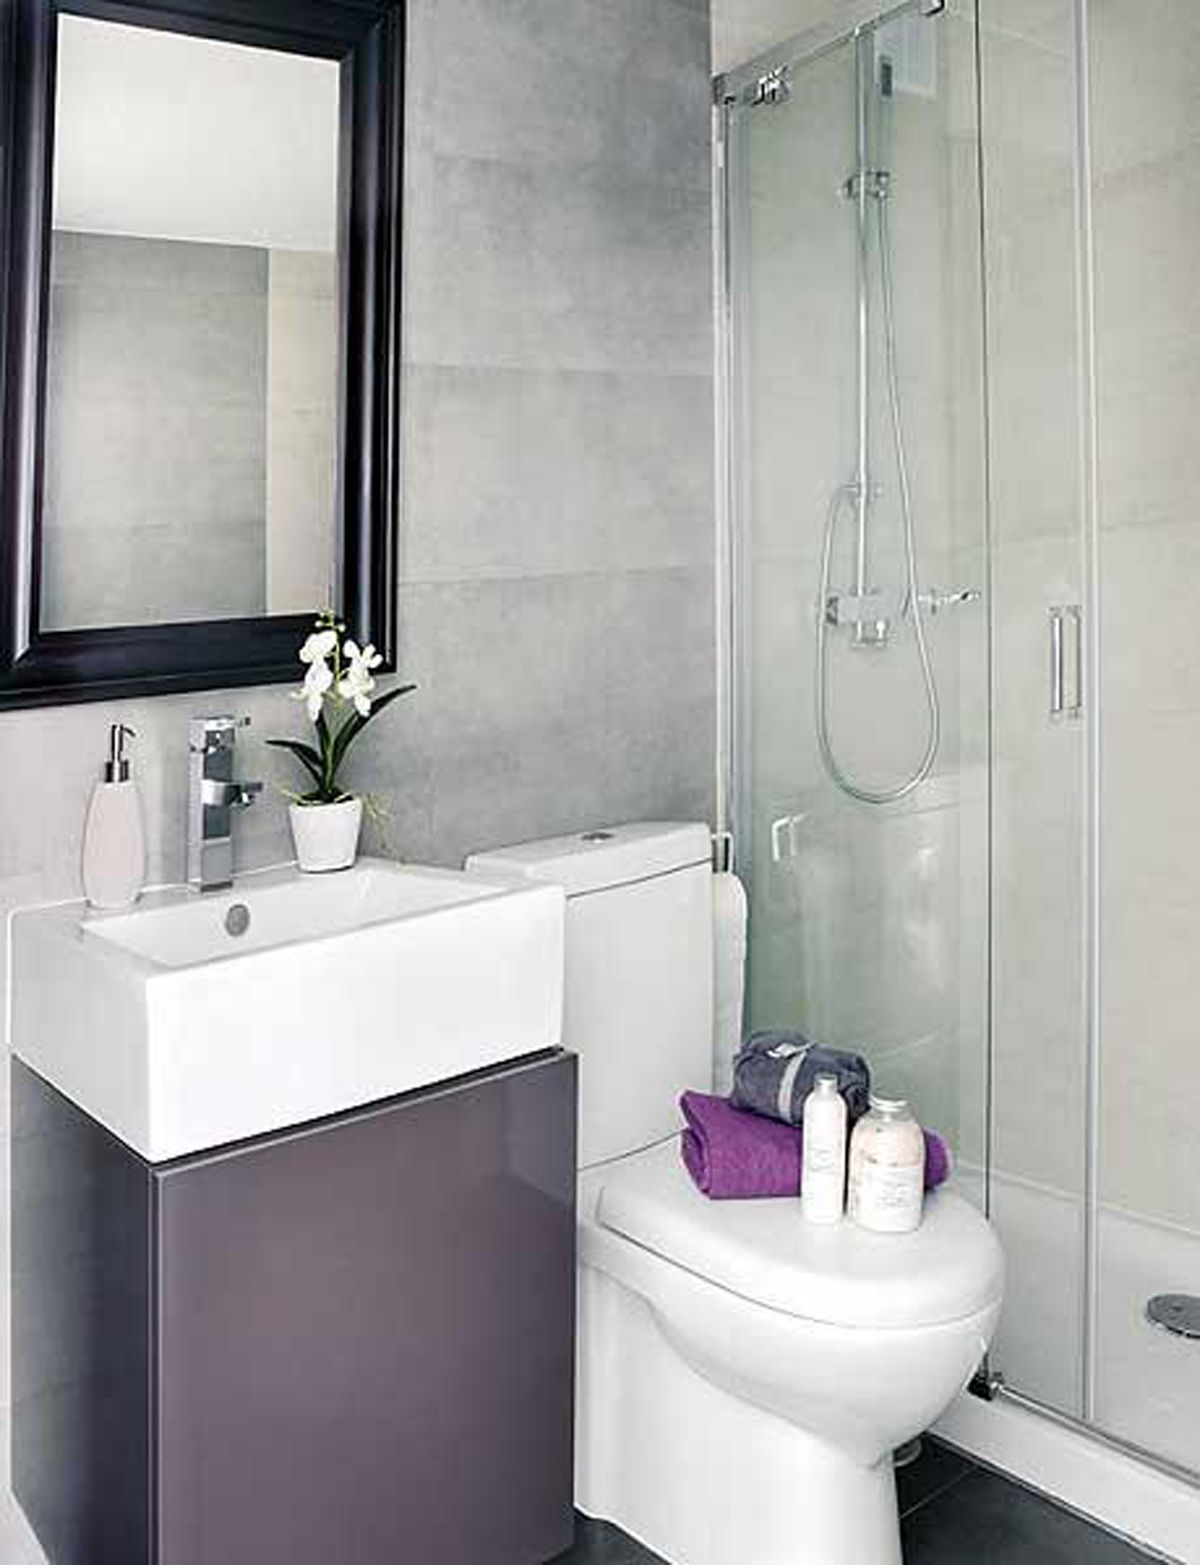 Bathroom ideas for small apartment bathrooms - Apartment Bathroom Design